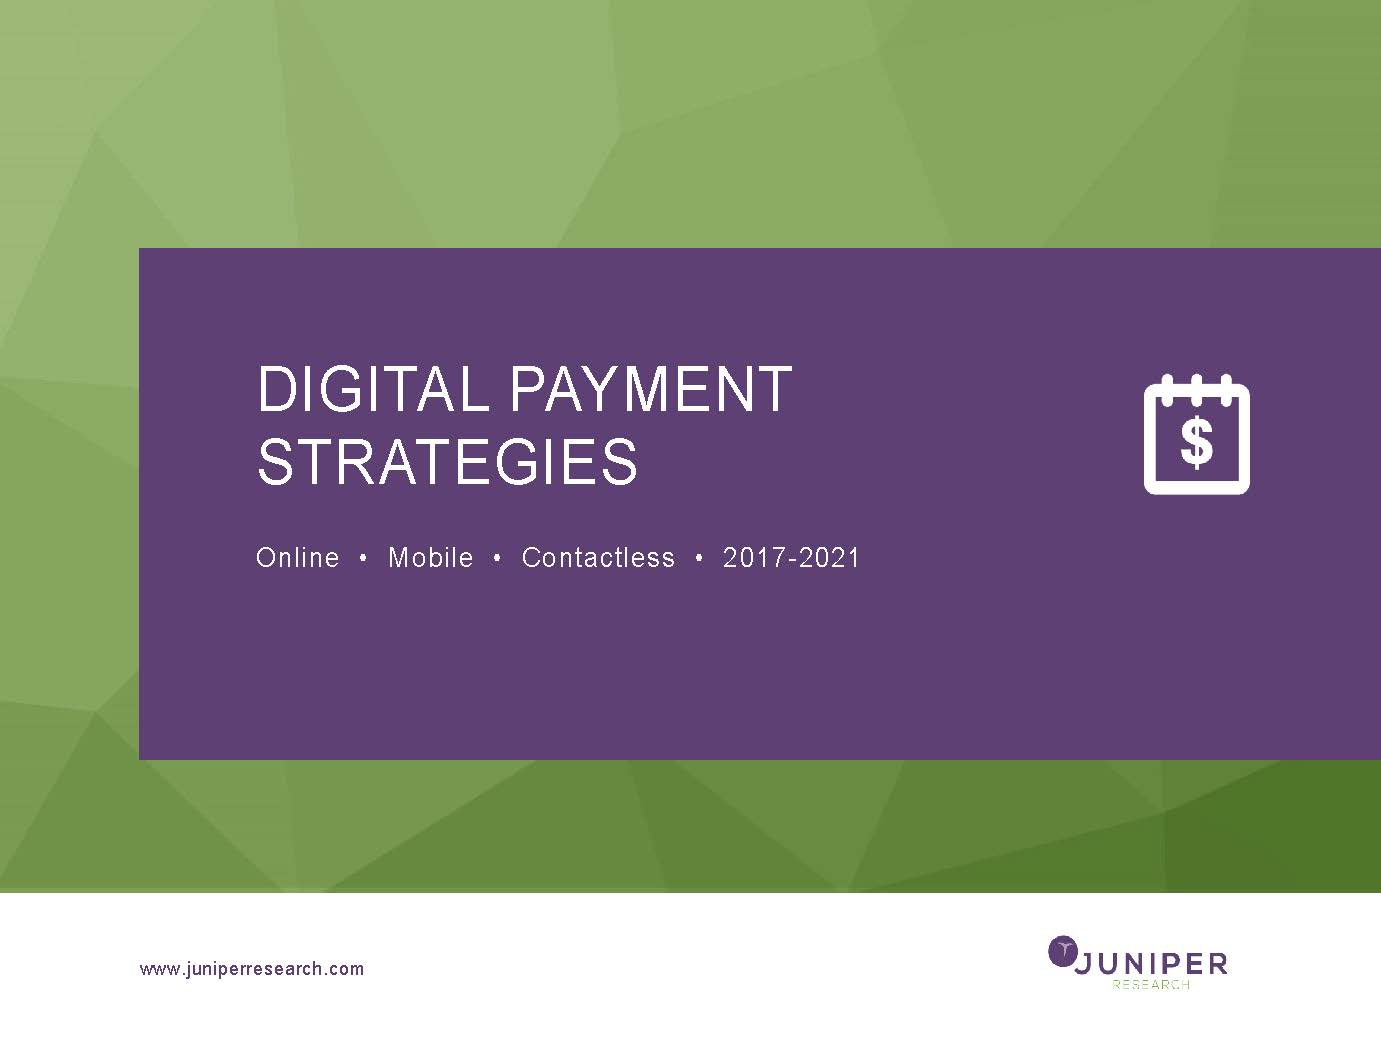 Digital Payment Strategies - Executive Summary & Core Findings